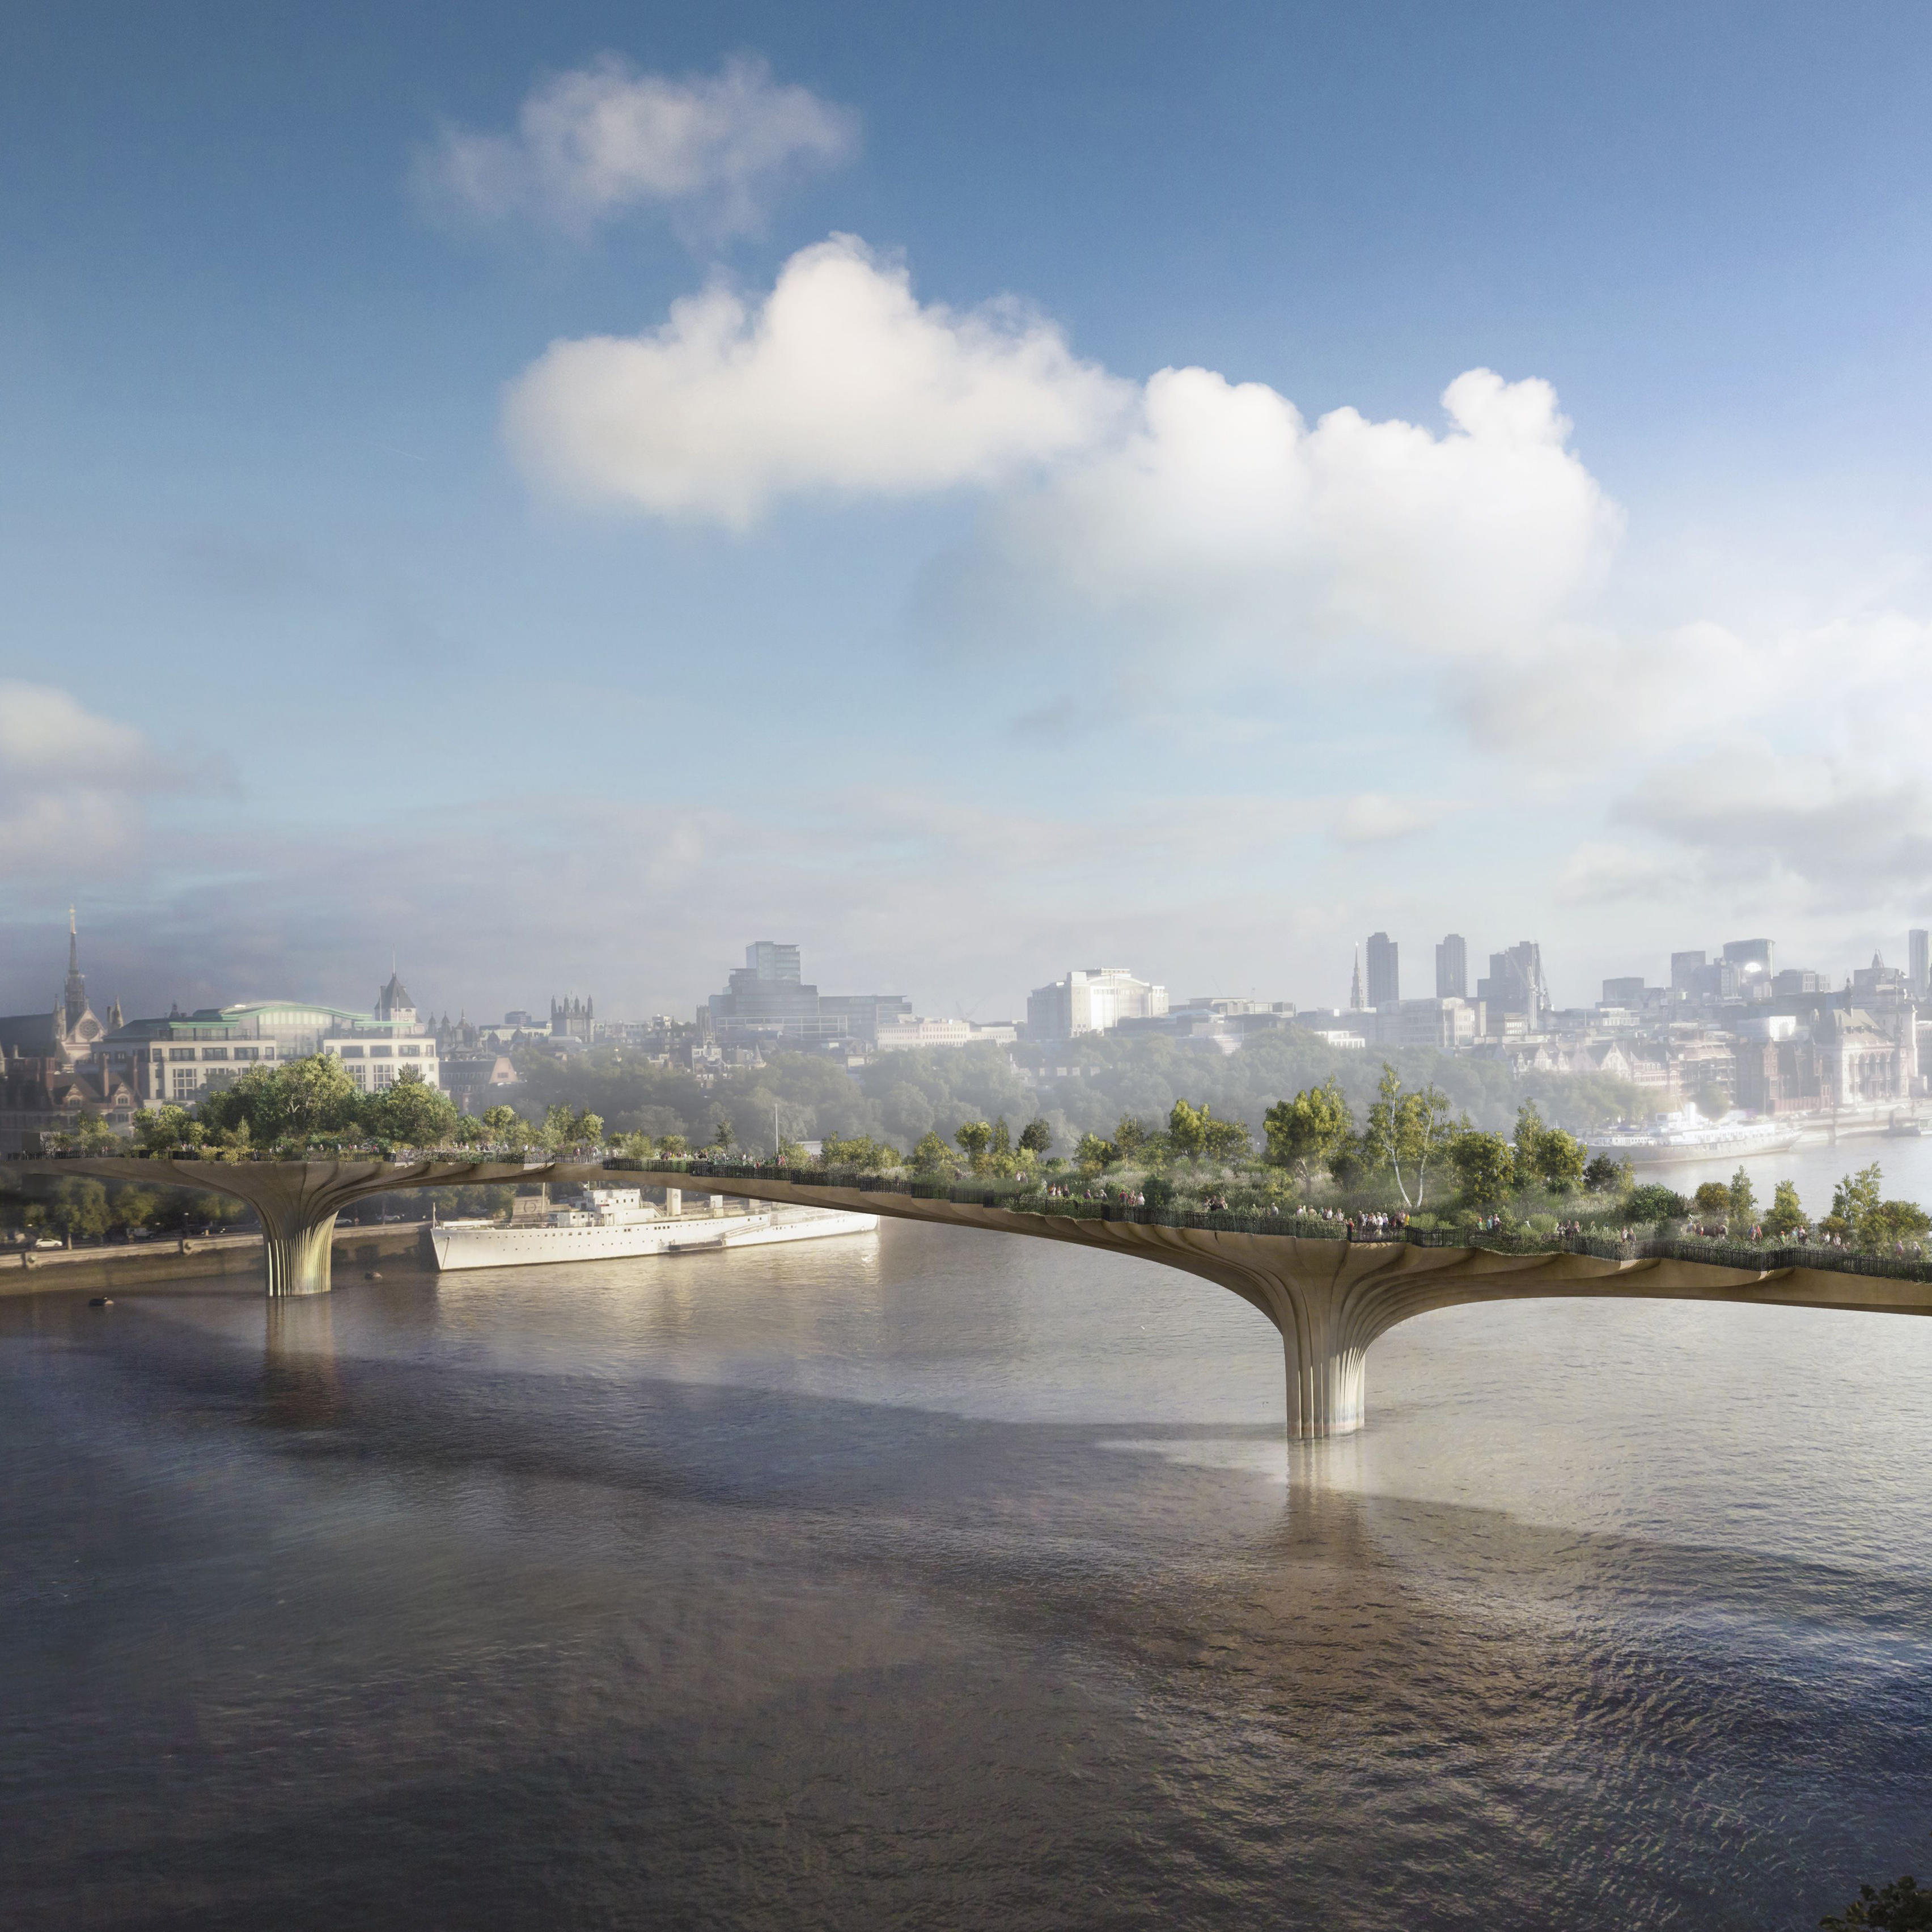 Thomas Heatherwick's Garden Bridge design